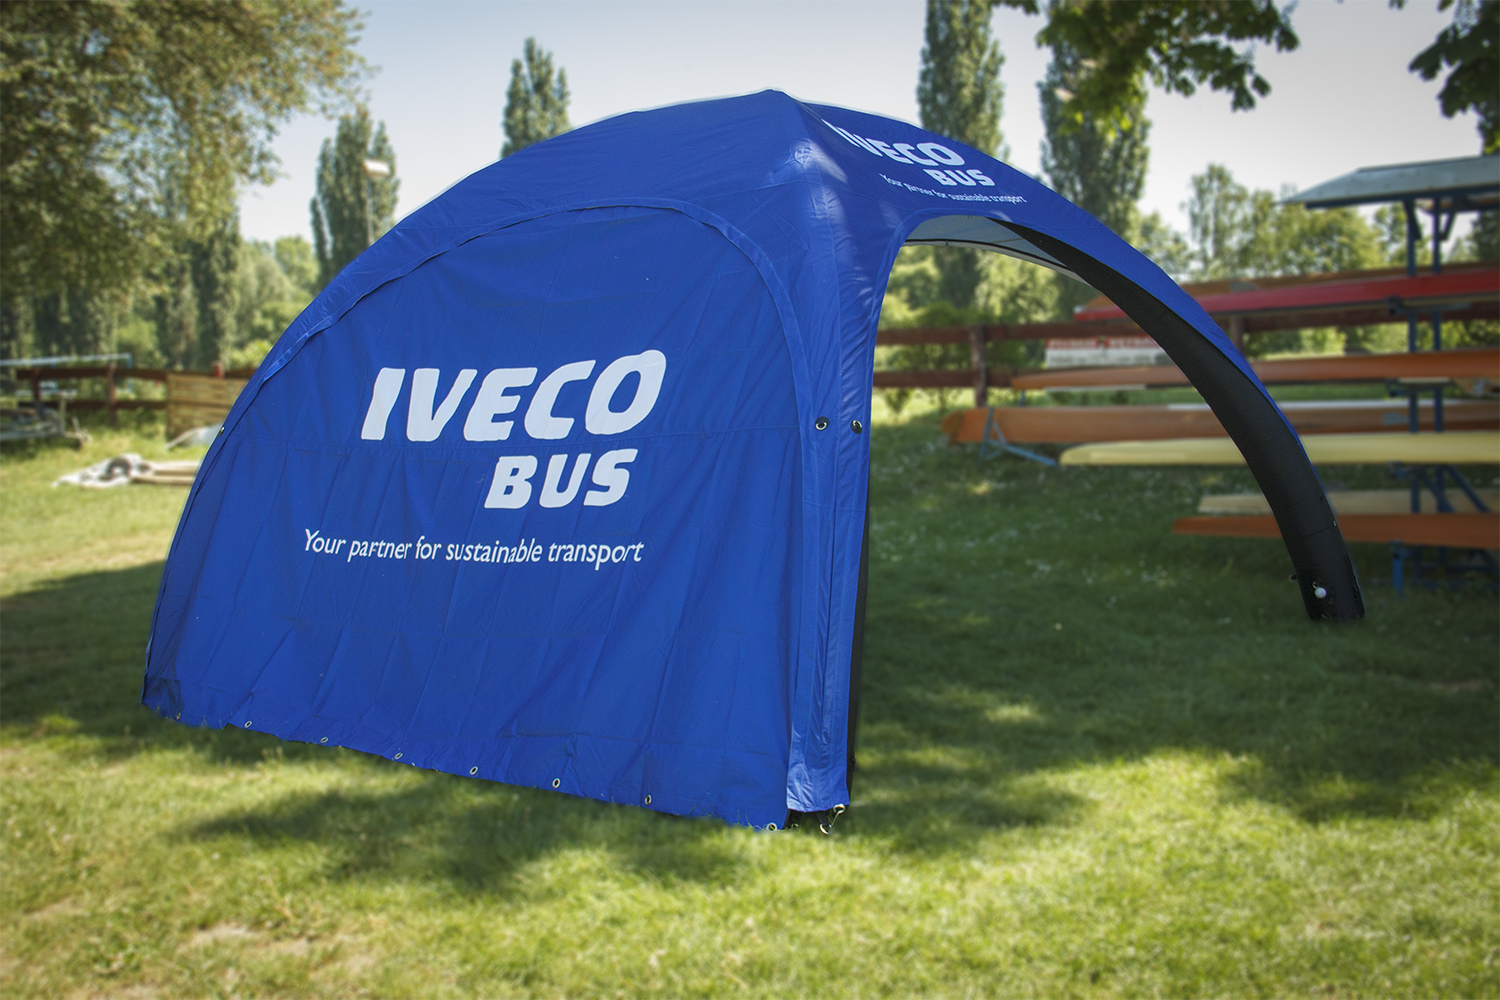 stan_iveco